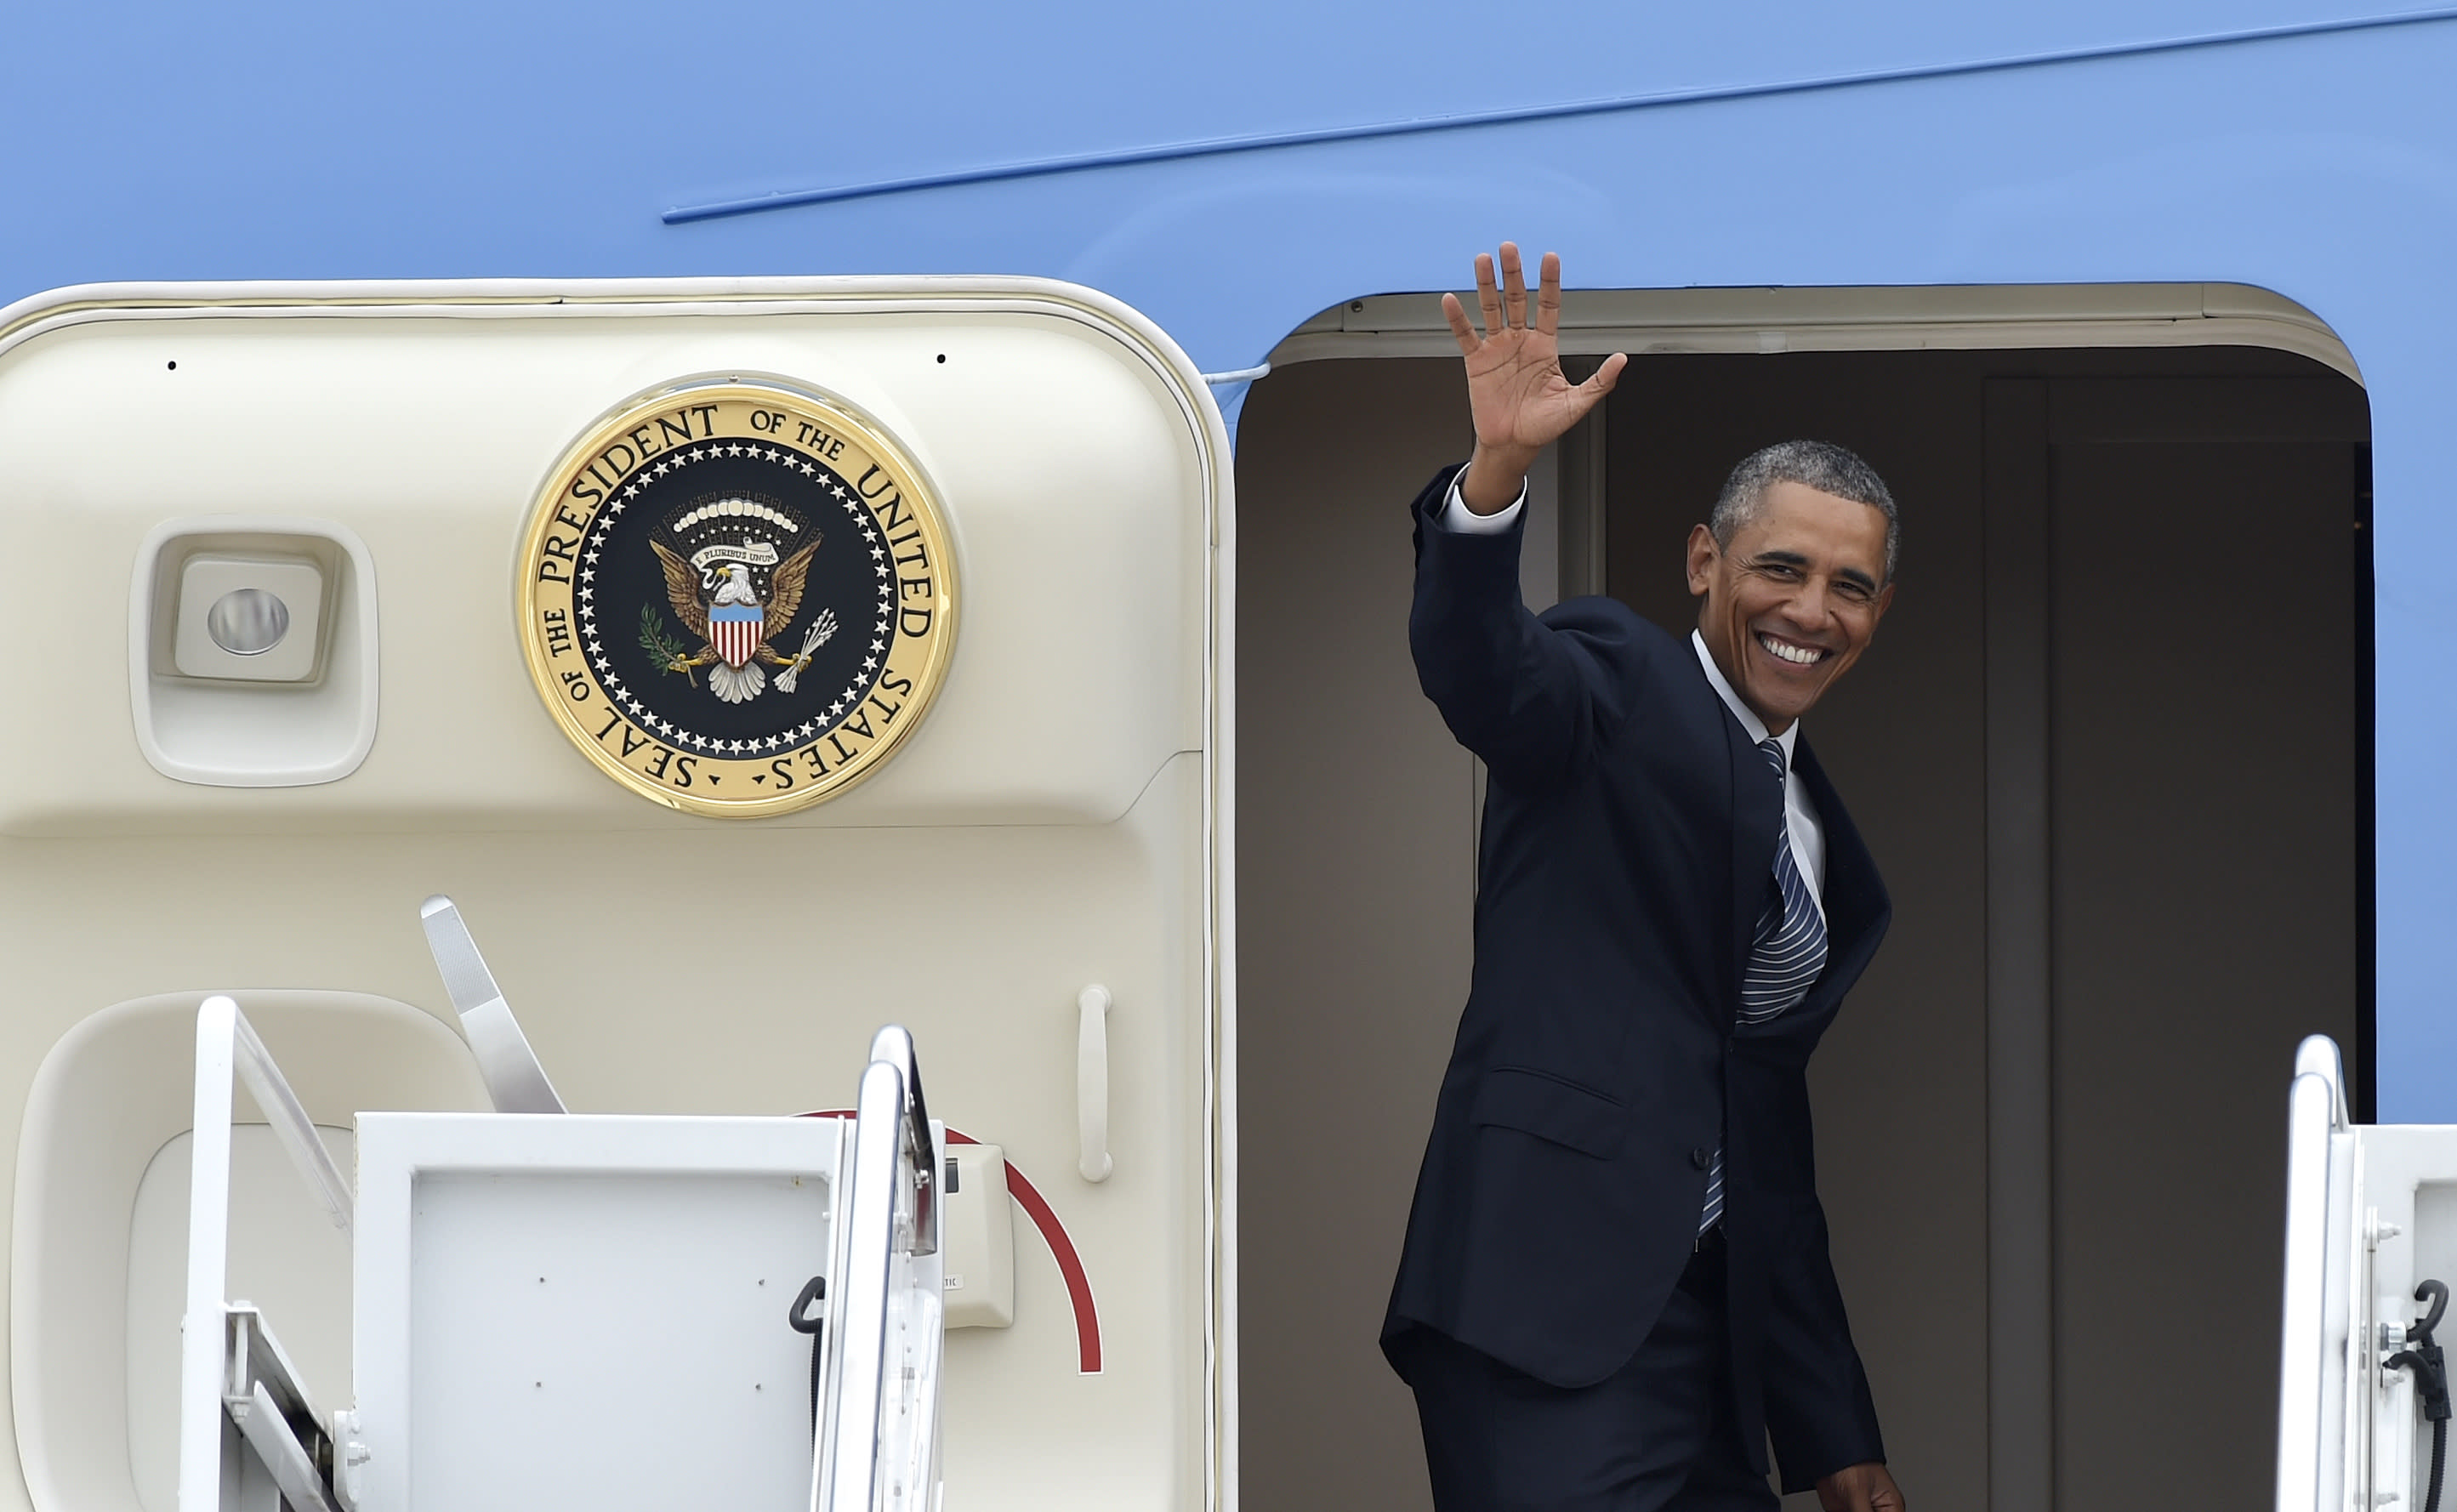 Obama opens historic Alaska trip focused on global warming